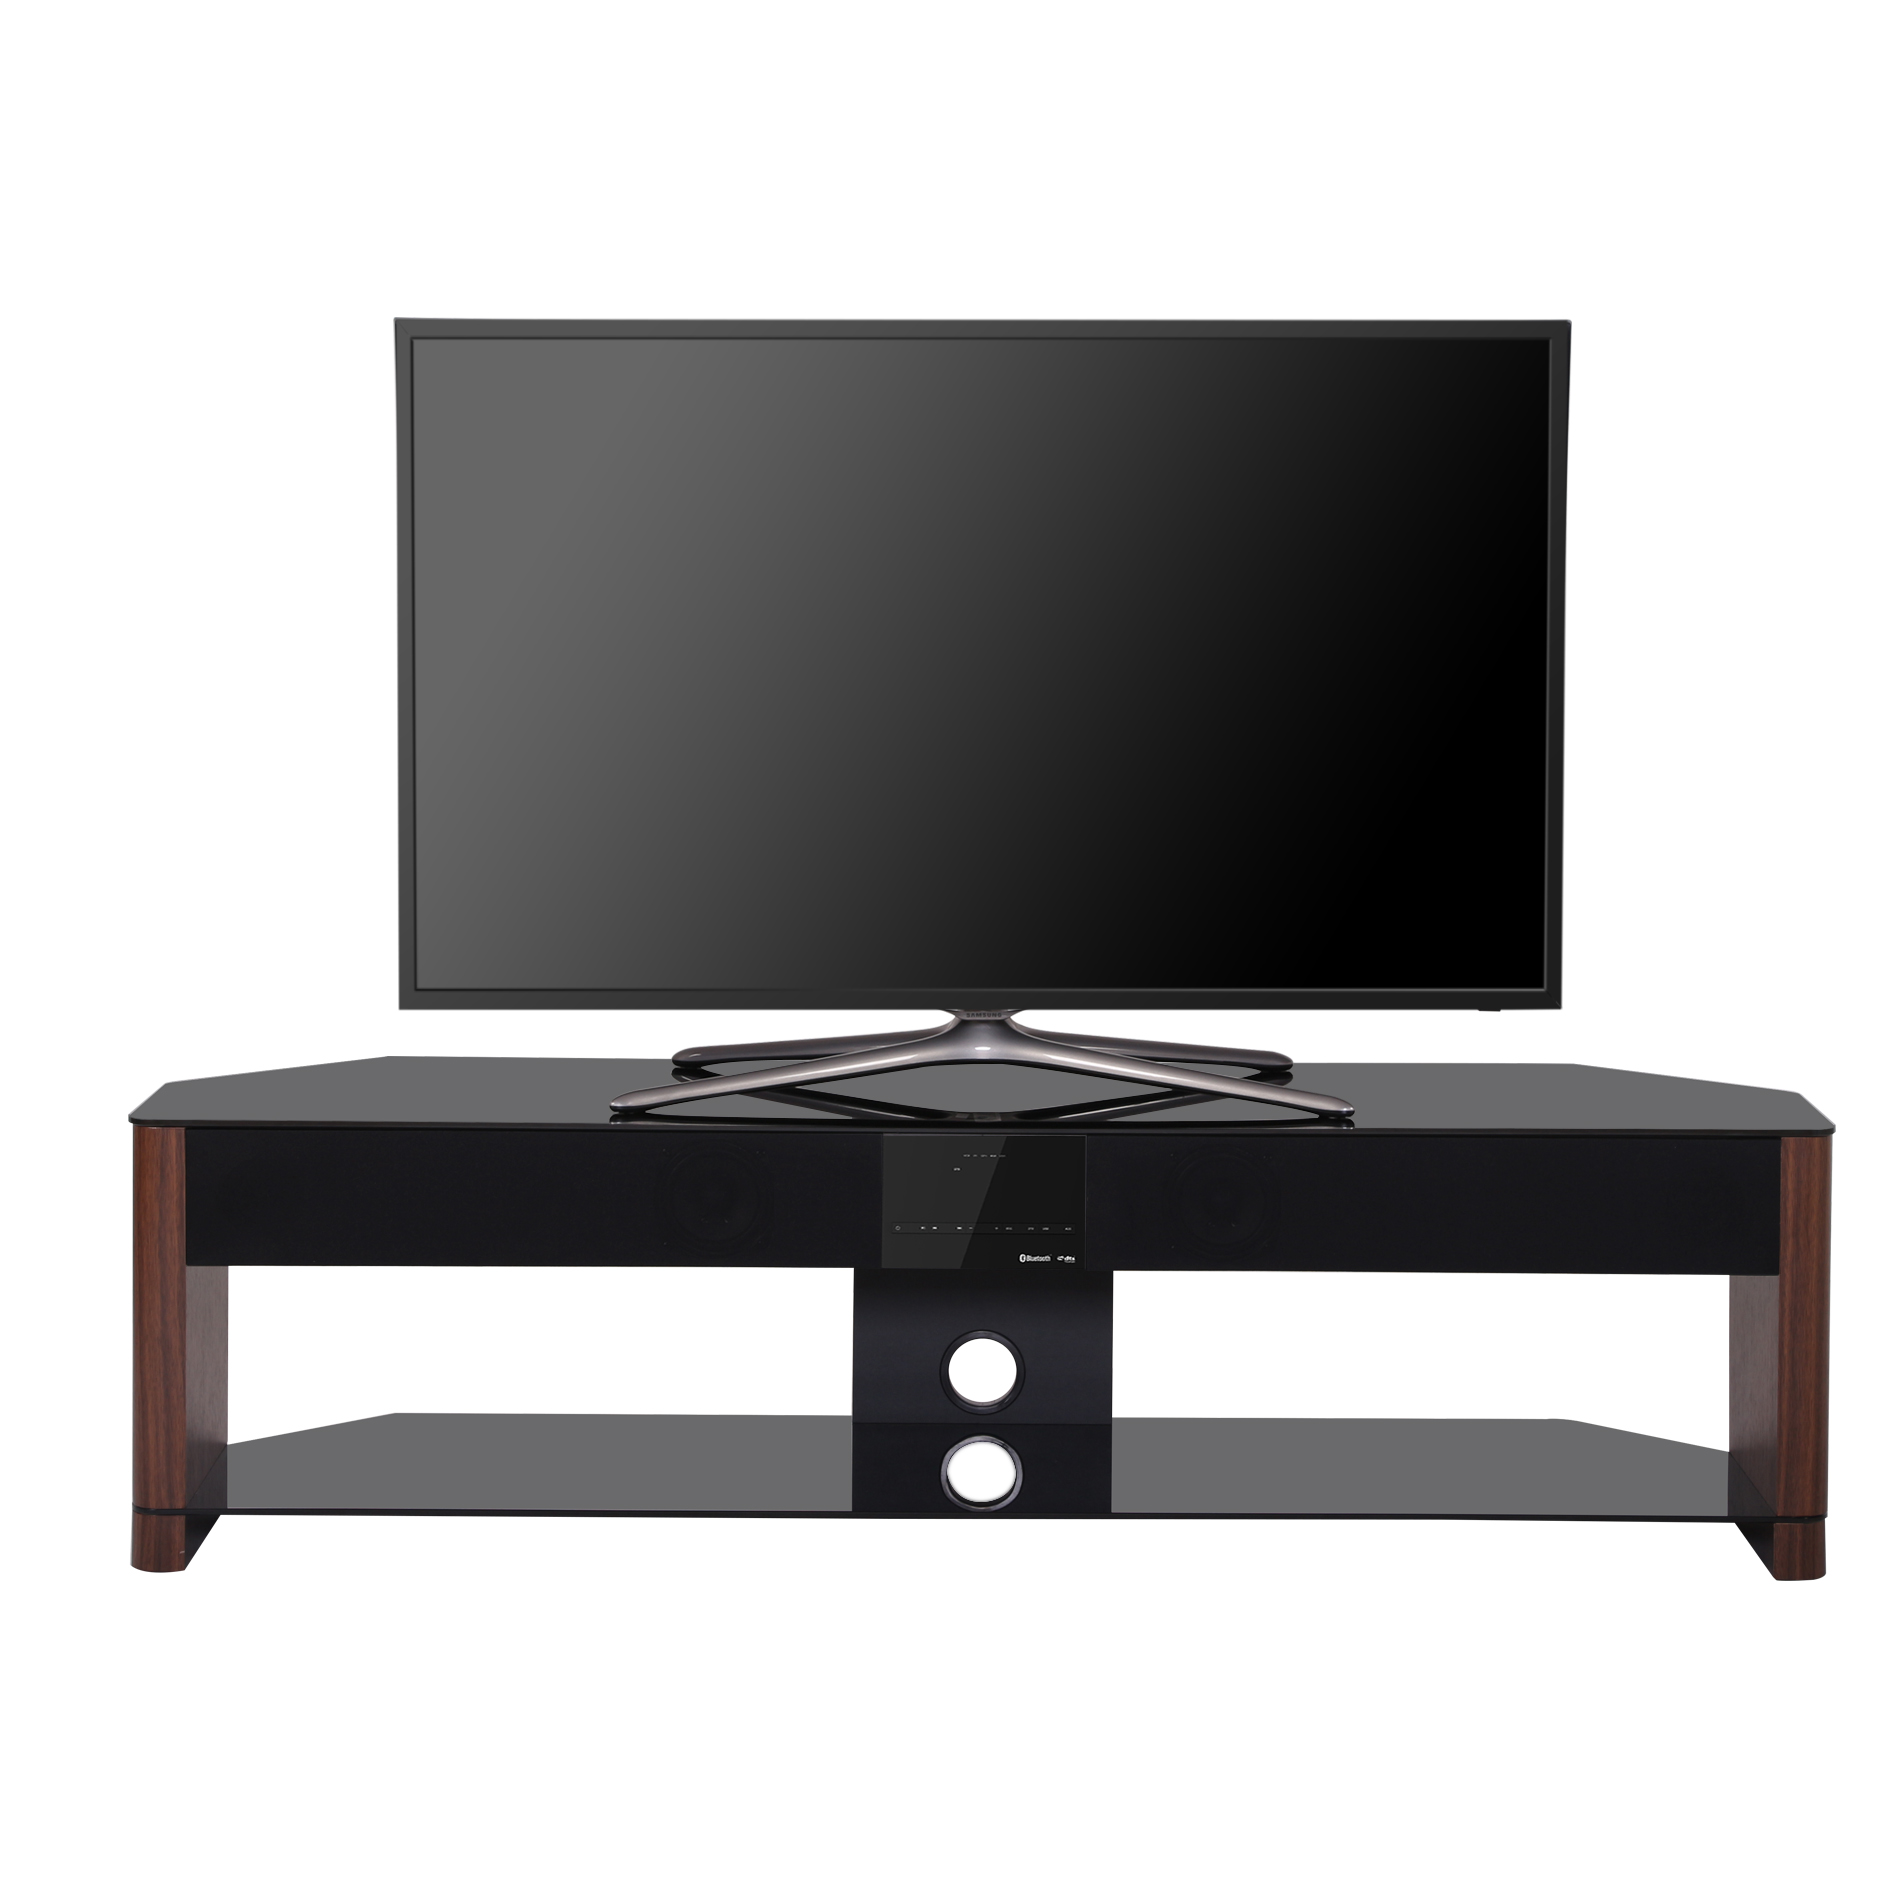 Fitueyes 2 Tier Wood Tv Stand With Sound Bar Bluetooth Speakers